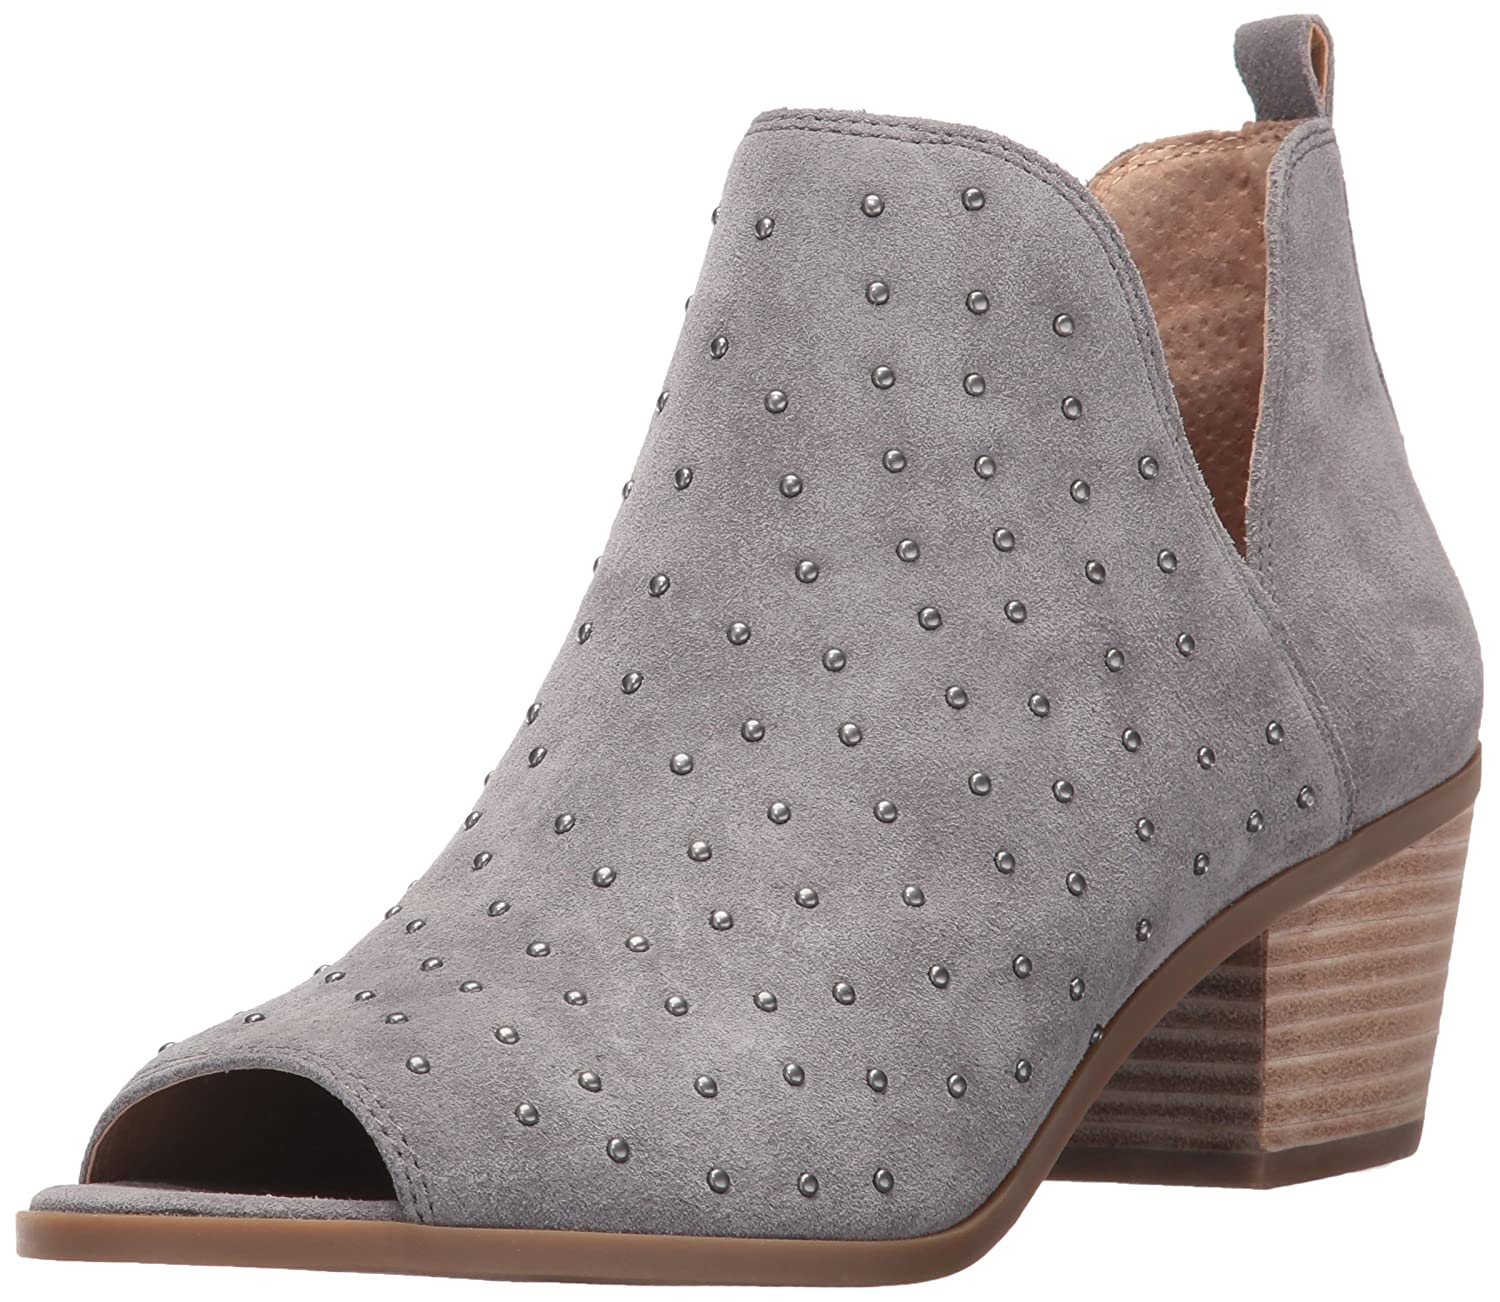 Lucky Brand Women's Barlenna Ankle Boot B06XS766QT 5.5 B(M) US|Steel Grey